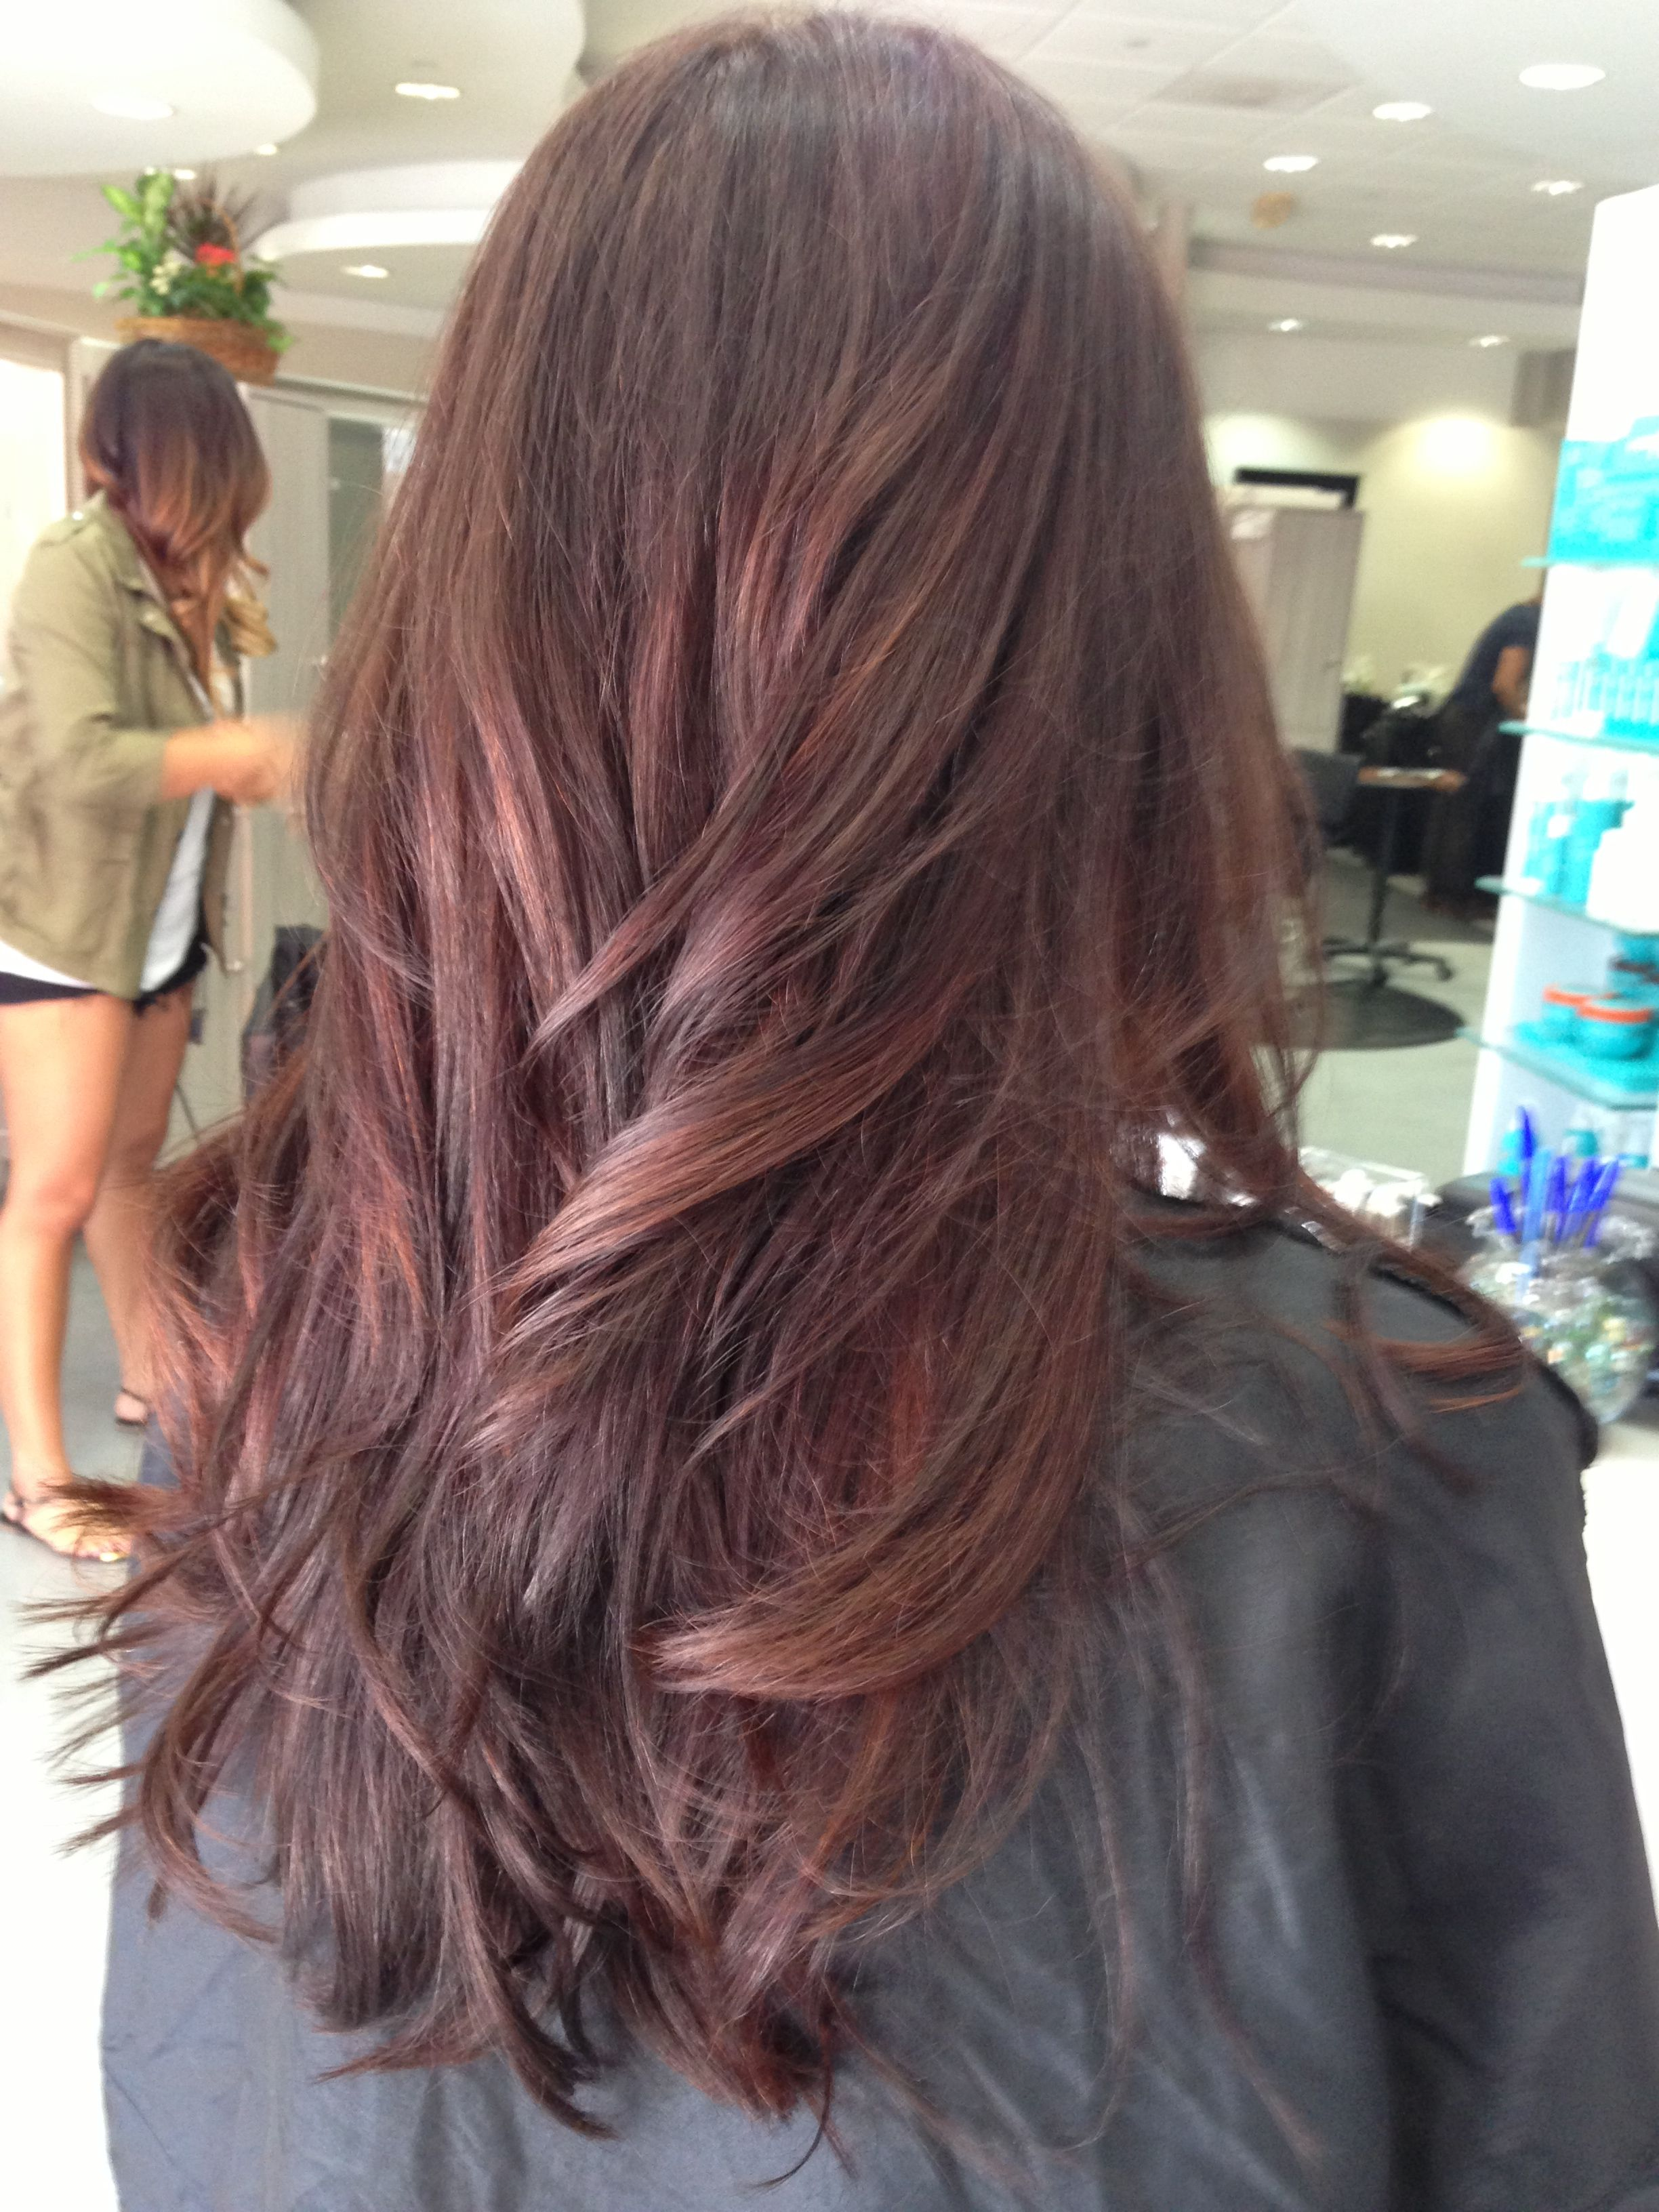 Subtle dark auburn balayage for a demensional in your solid hair